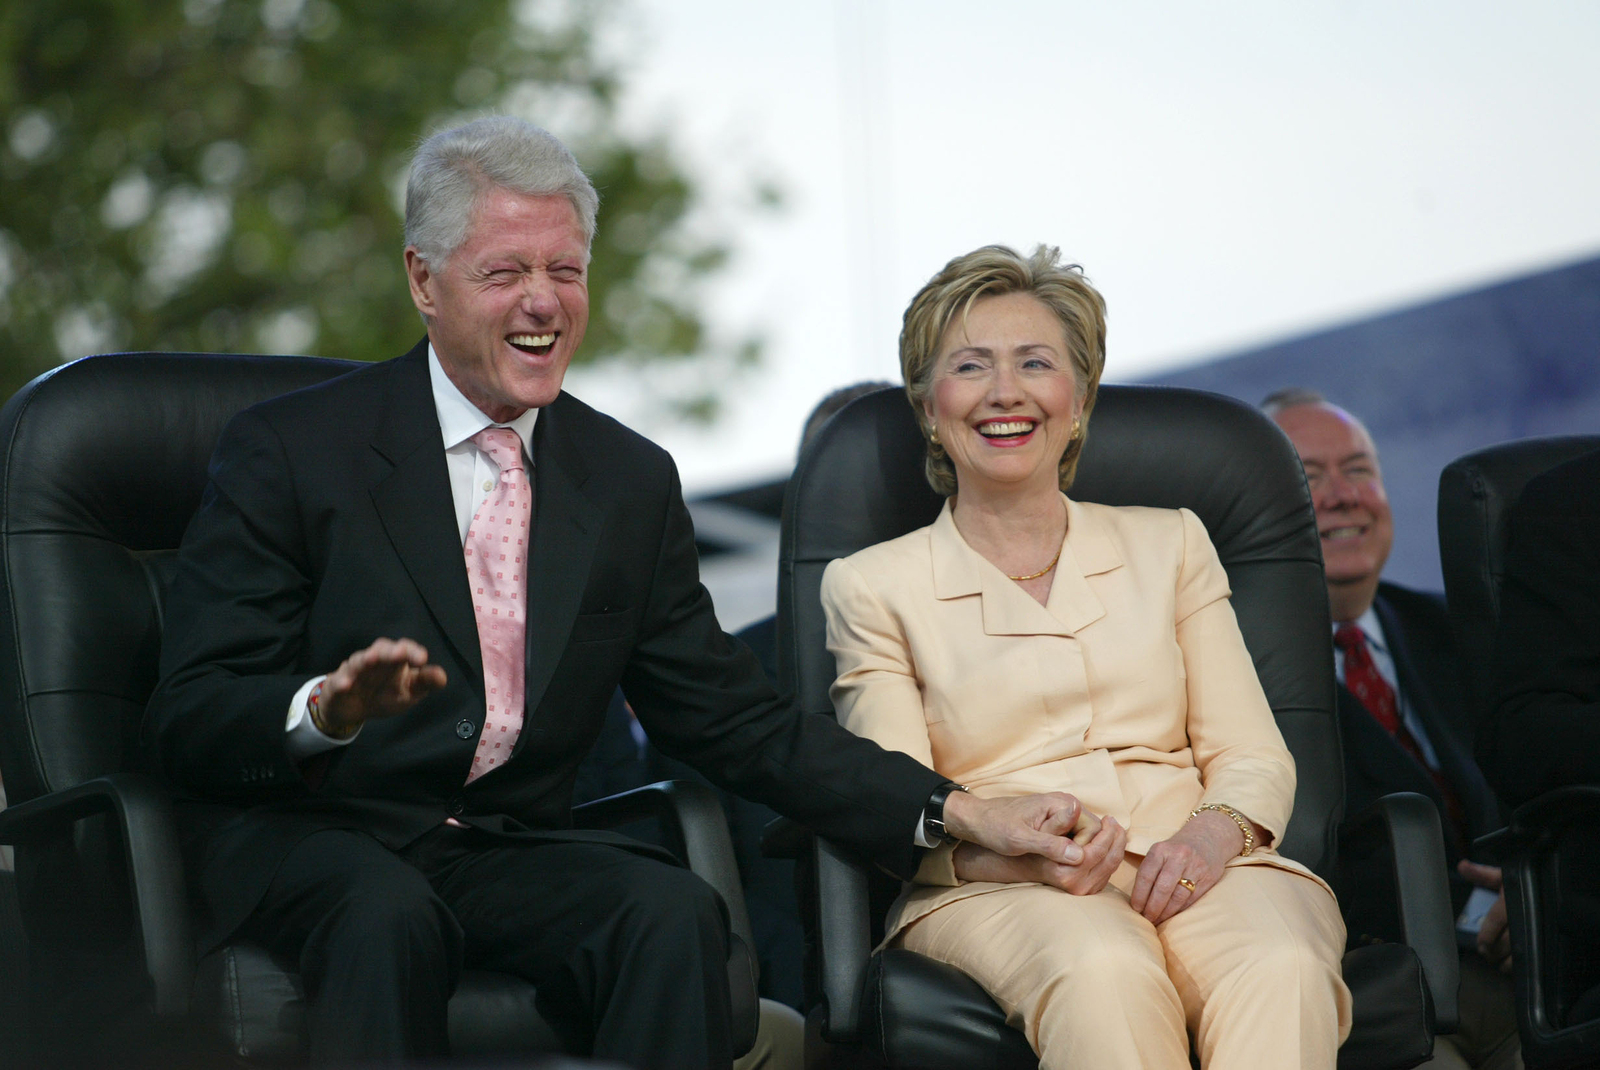 All Those Times The Clintons Promised To 'Make America